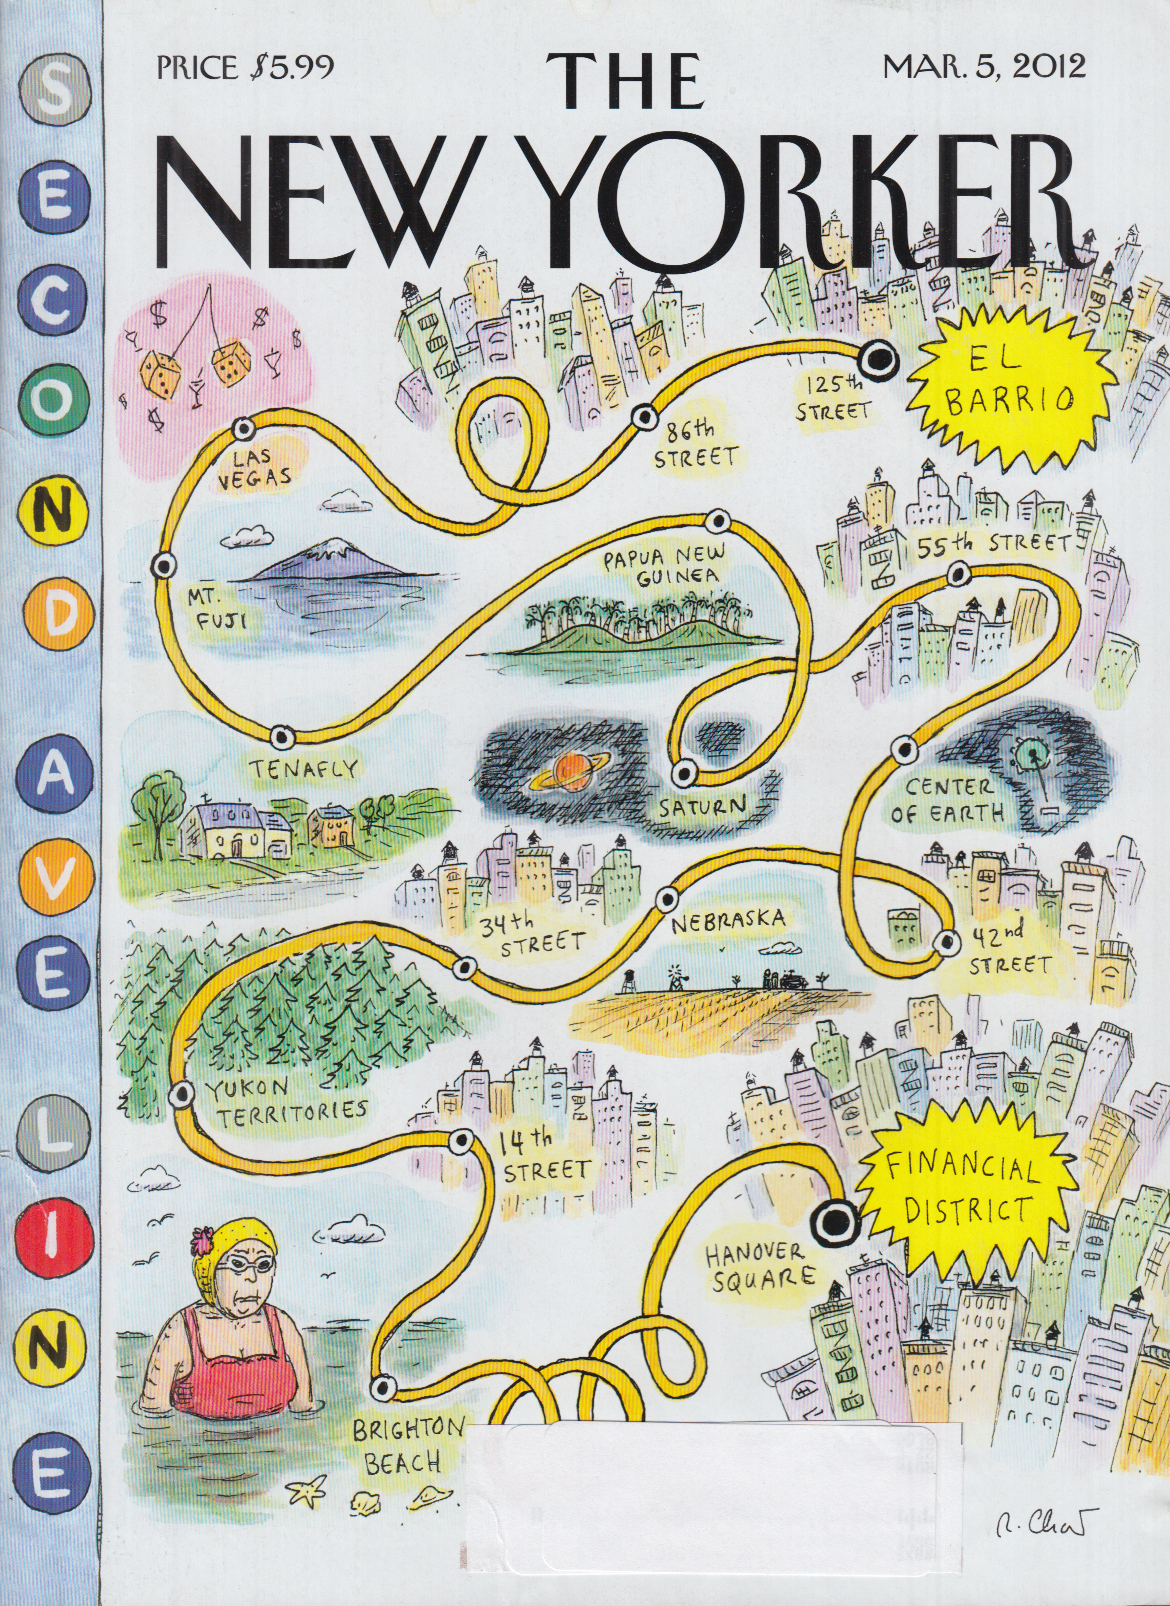 New Yorker cover Chast El Barrio to Financial Distrct road map 3/5 2012